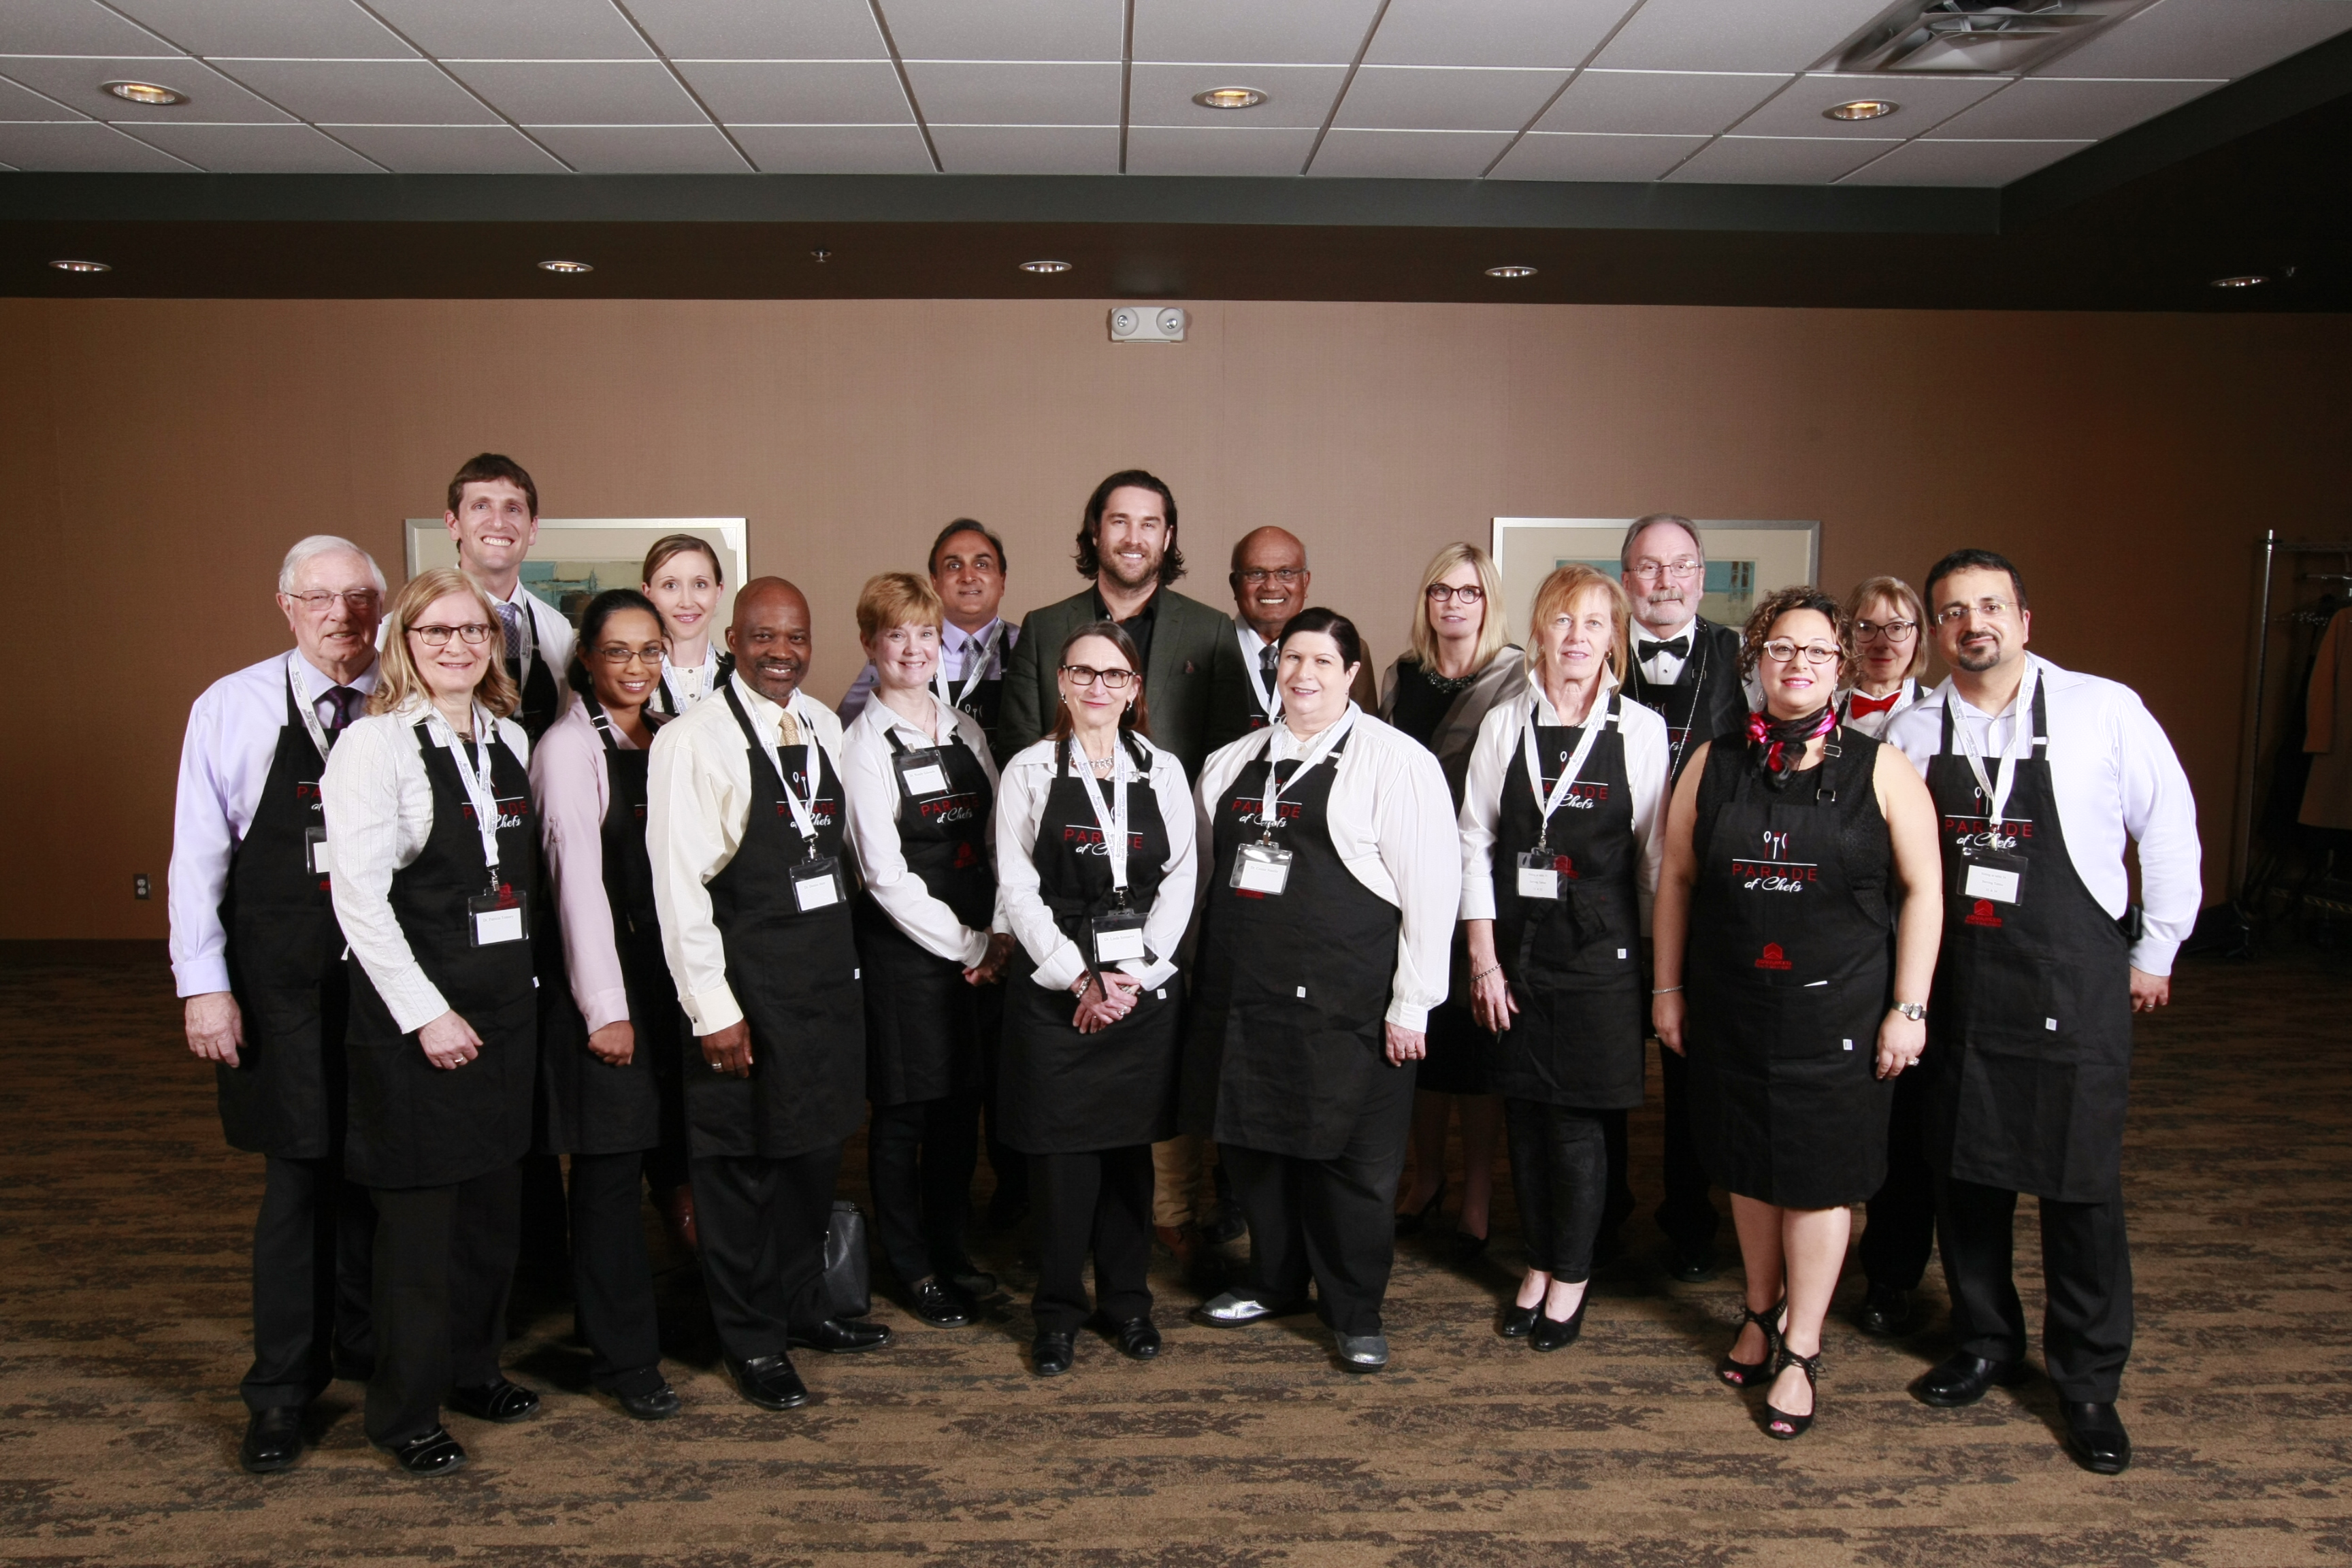 Parade of Chefs Raises Record $62,600 for Campaign